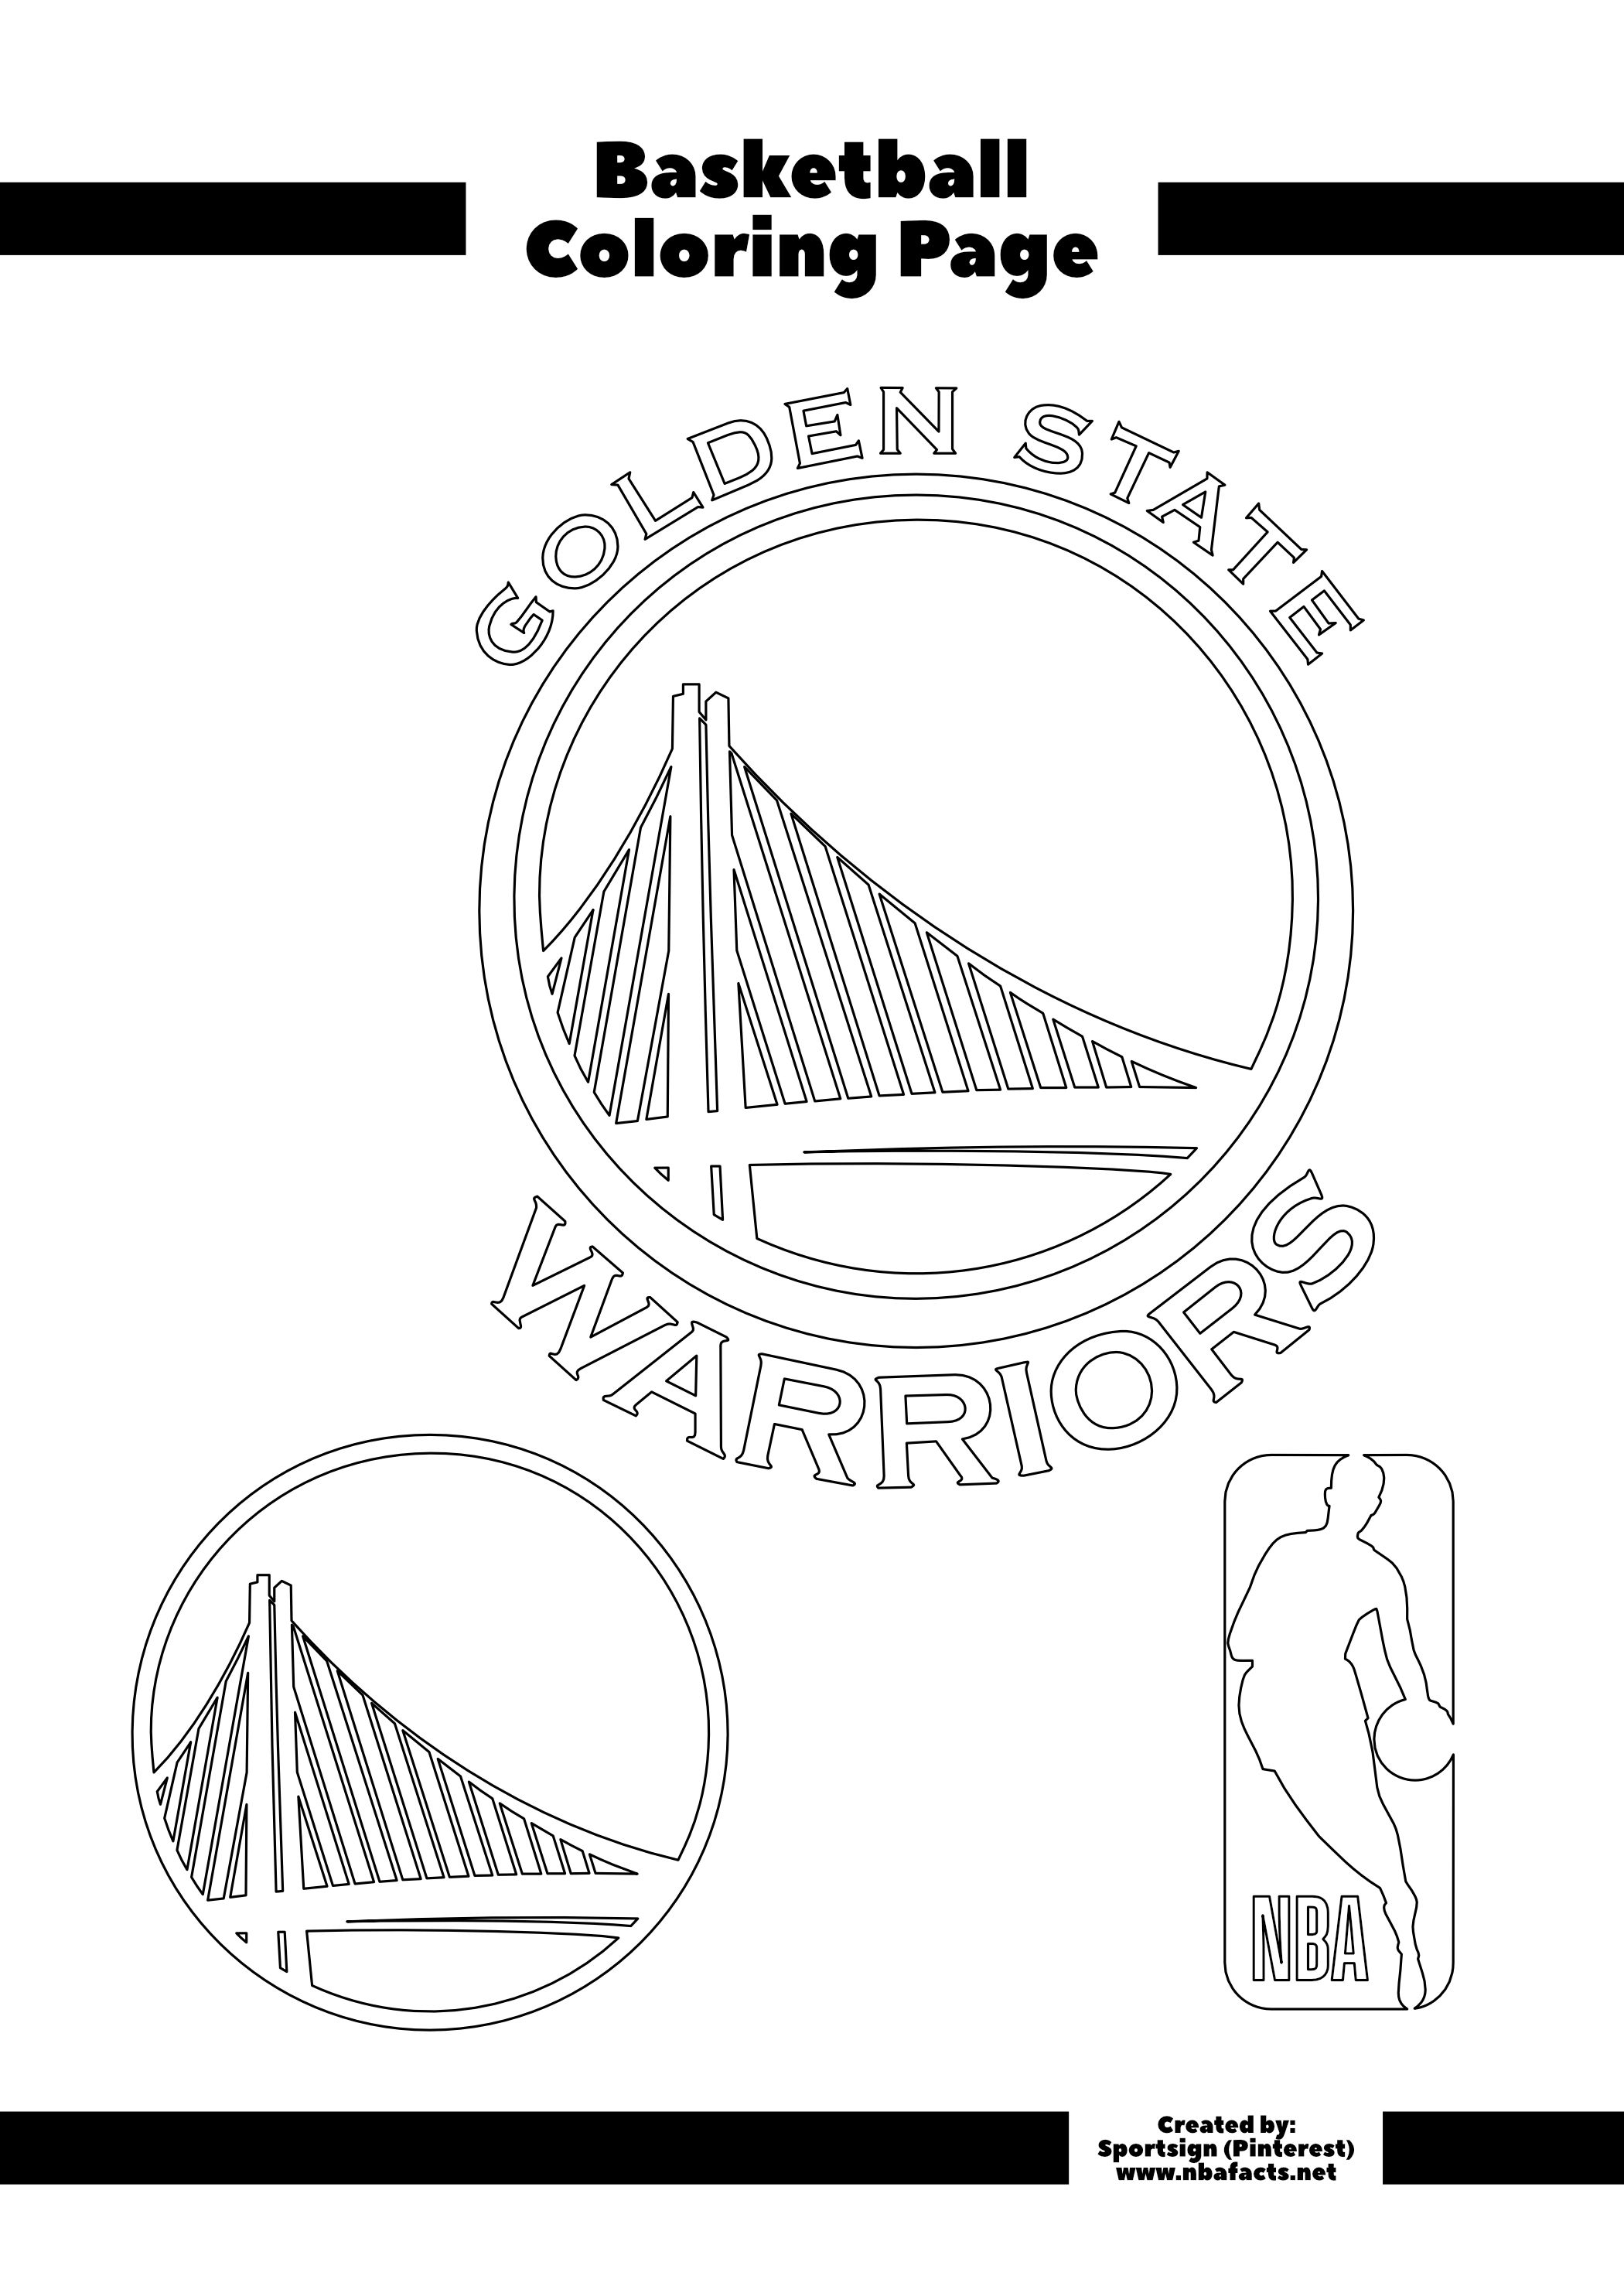 Golden State Warriors Free Coloring Page in 2020 ...